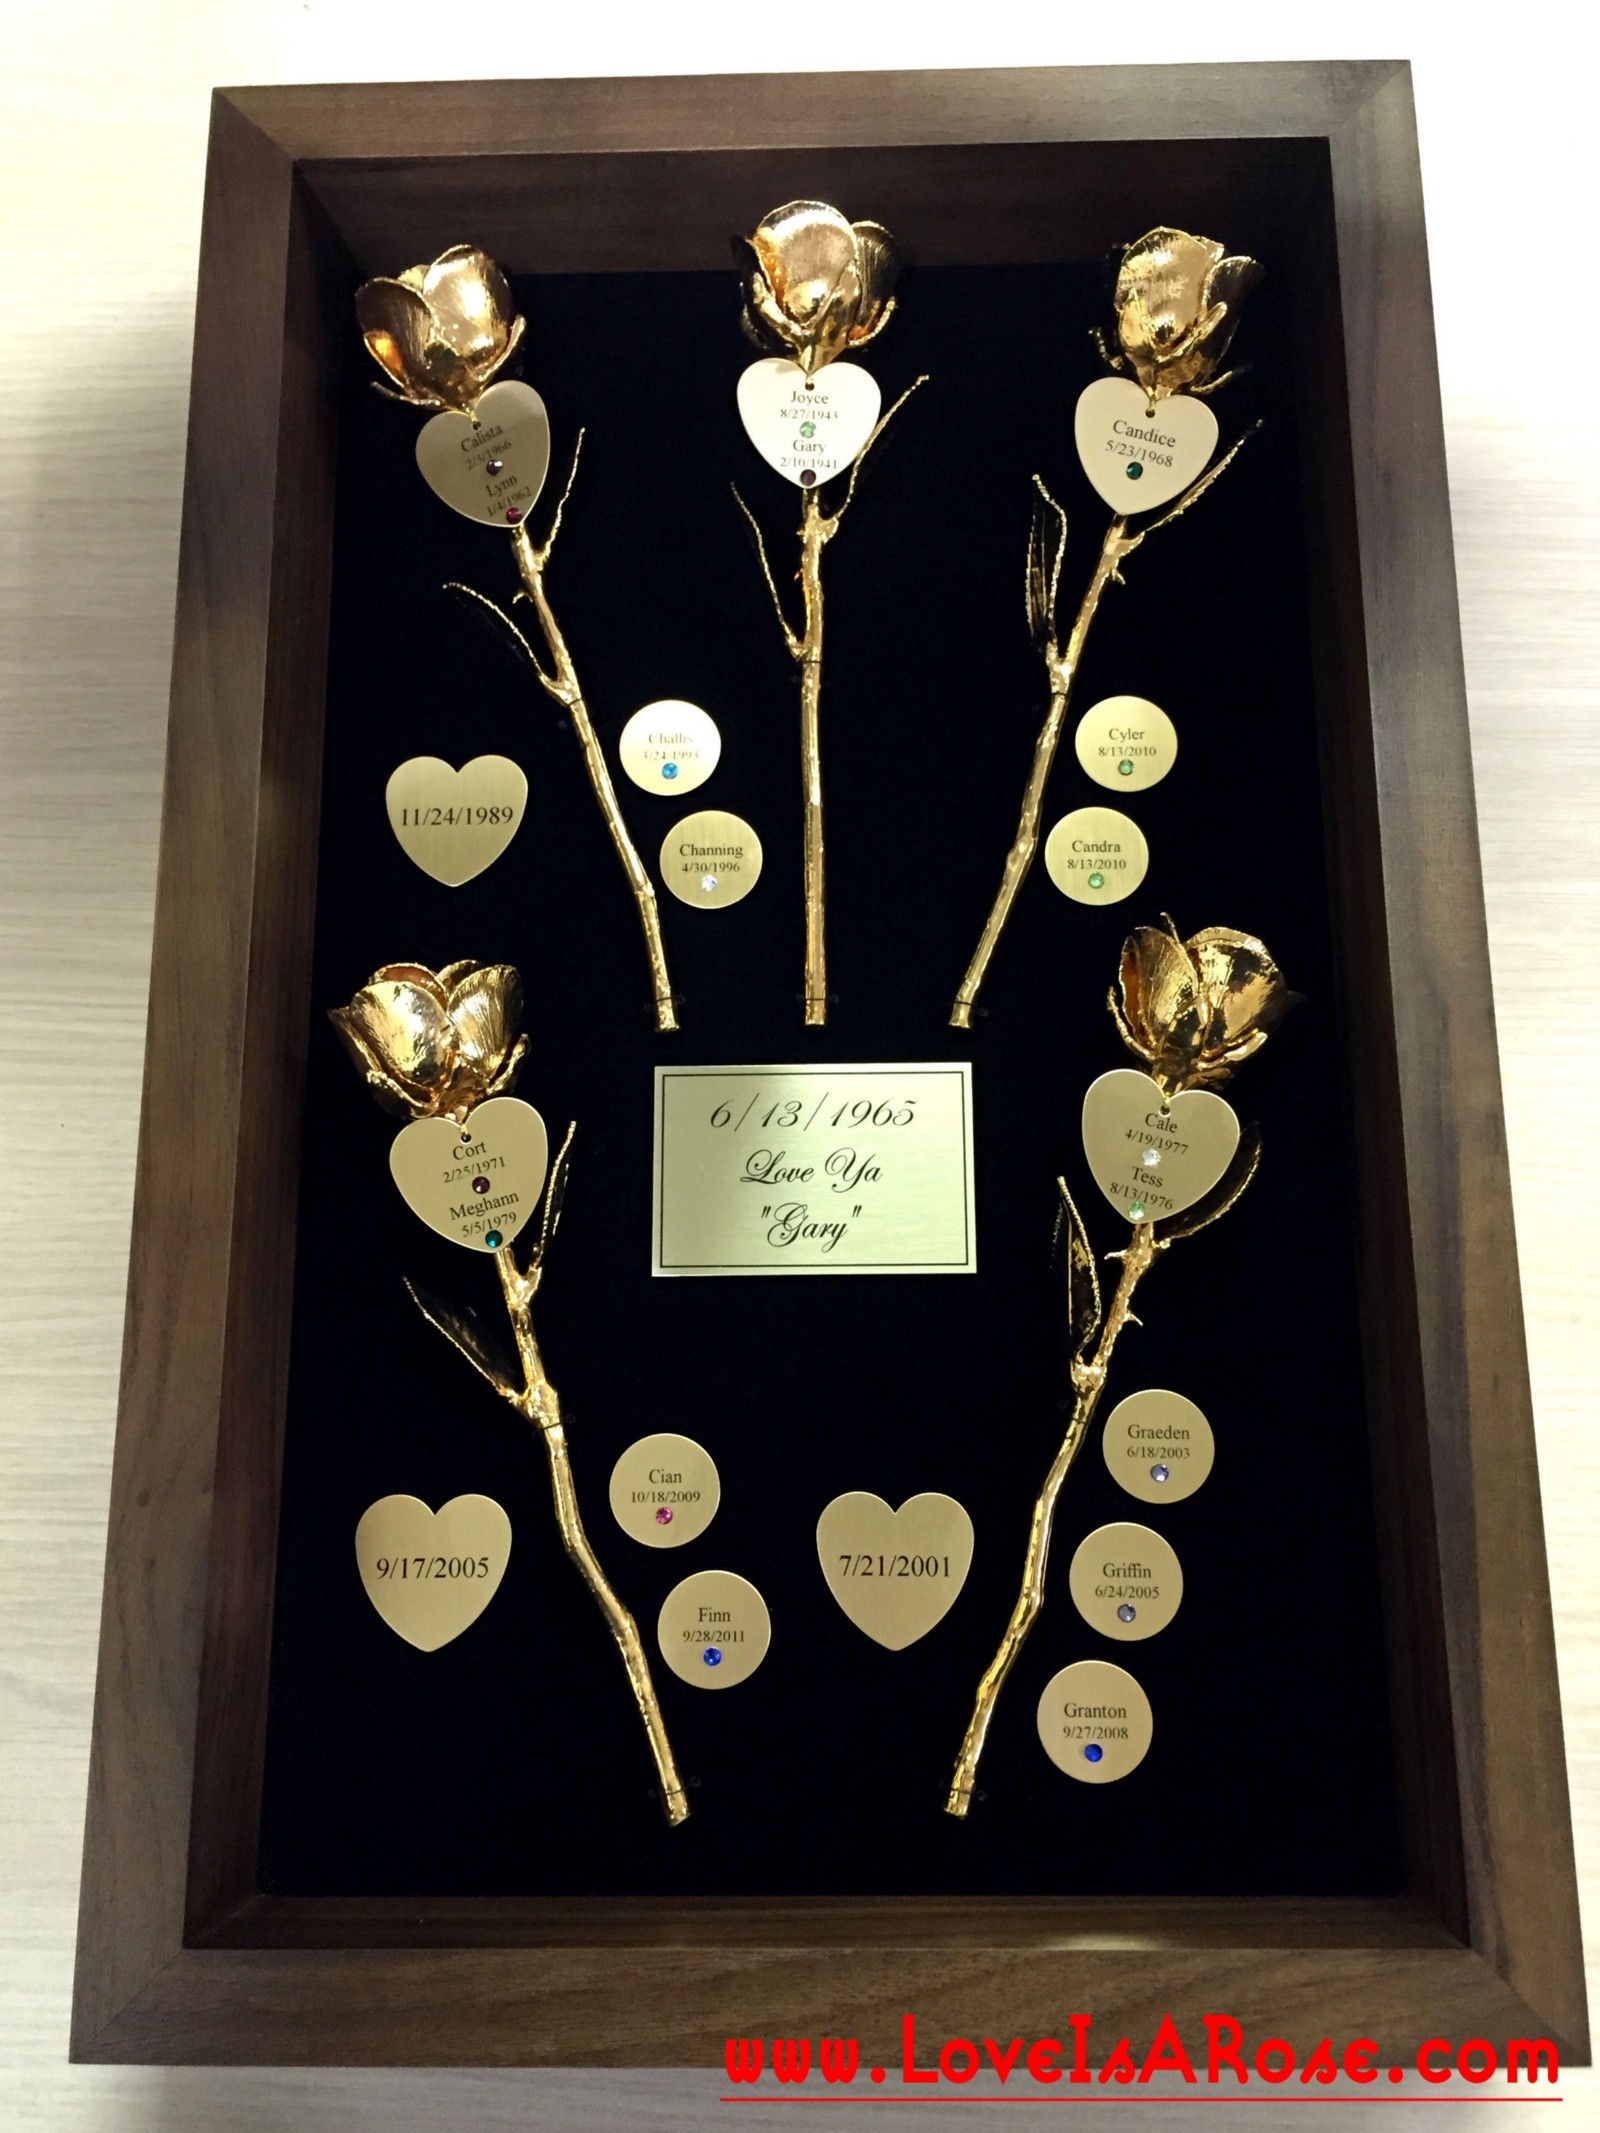 A customer from Colorado wanted something really special for his wife on their milestone anniversary of 50 years. So we created a Custom 5oth Anniversary ... & Gold Roses for Custom 50th Anniversary Gifts u2013 Love is a Rose u2013 Medium